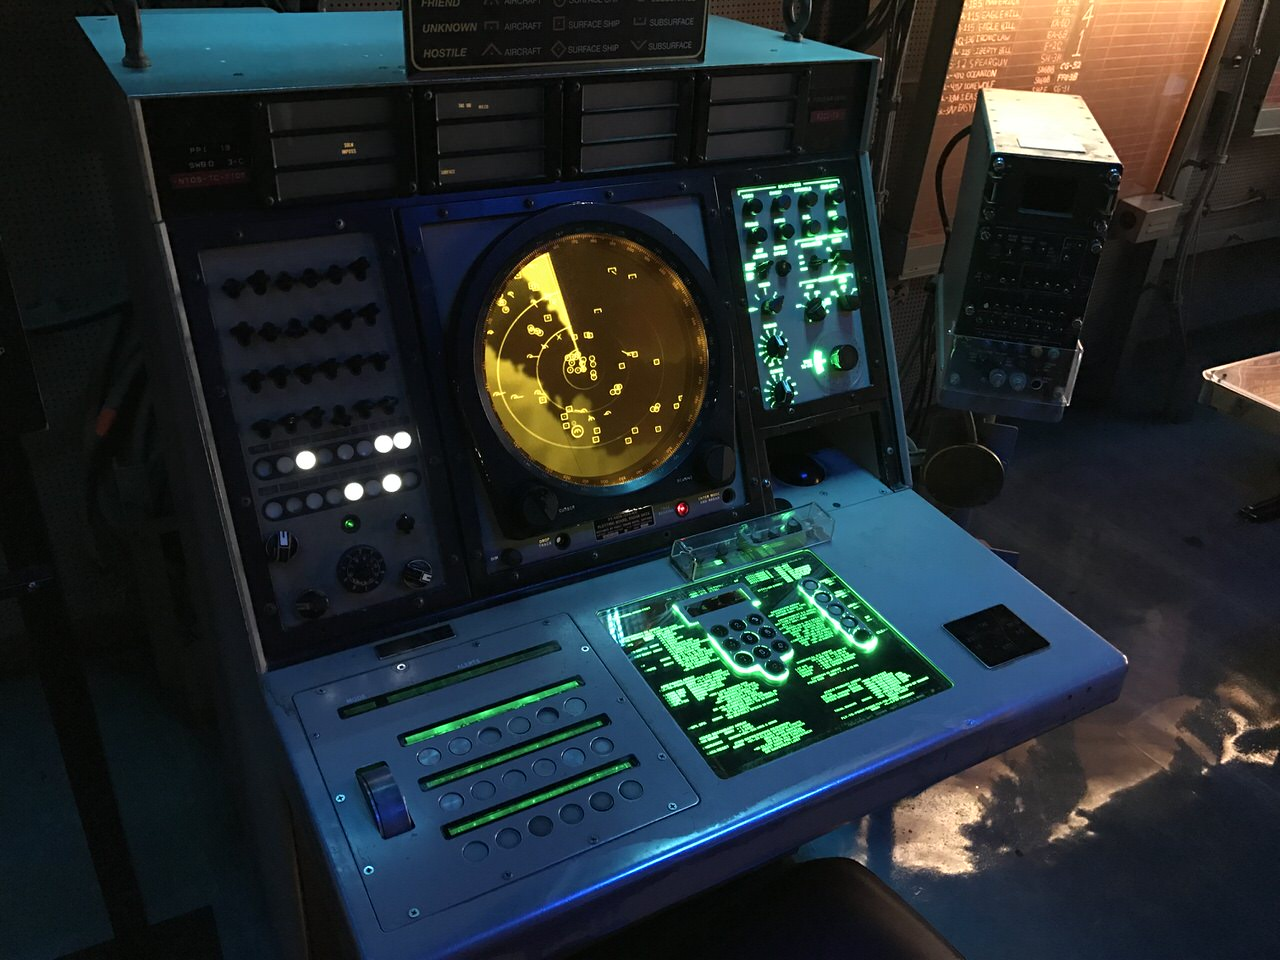 Uss midway museum 0595